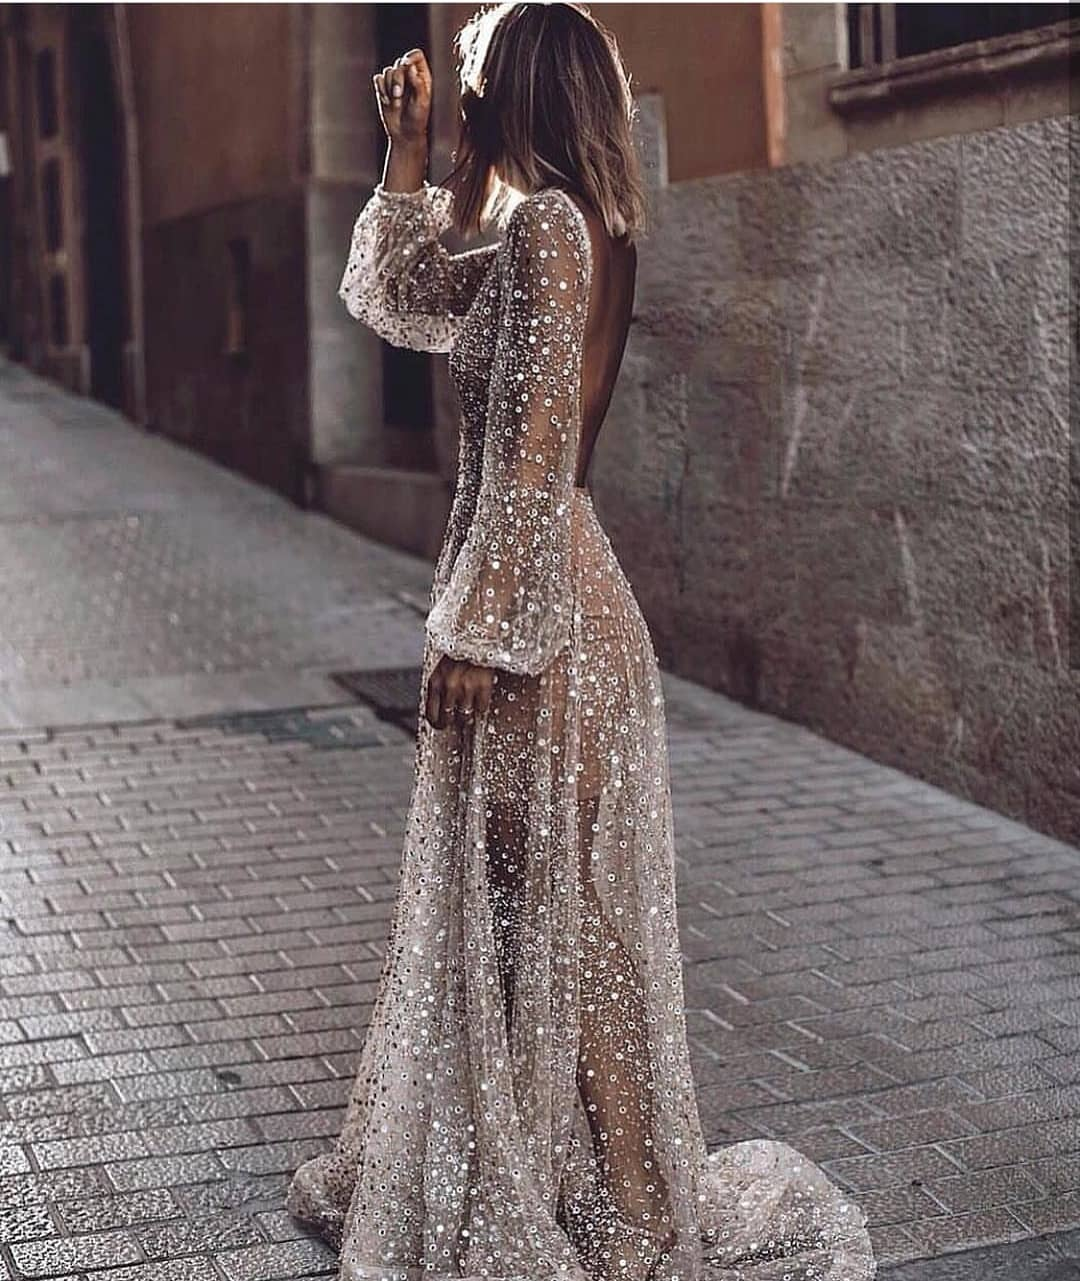 Sheer Sequined Maxi Gown With Open Back For Summer Cocktail Parties 2020